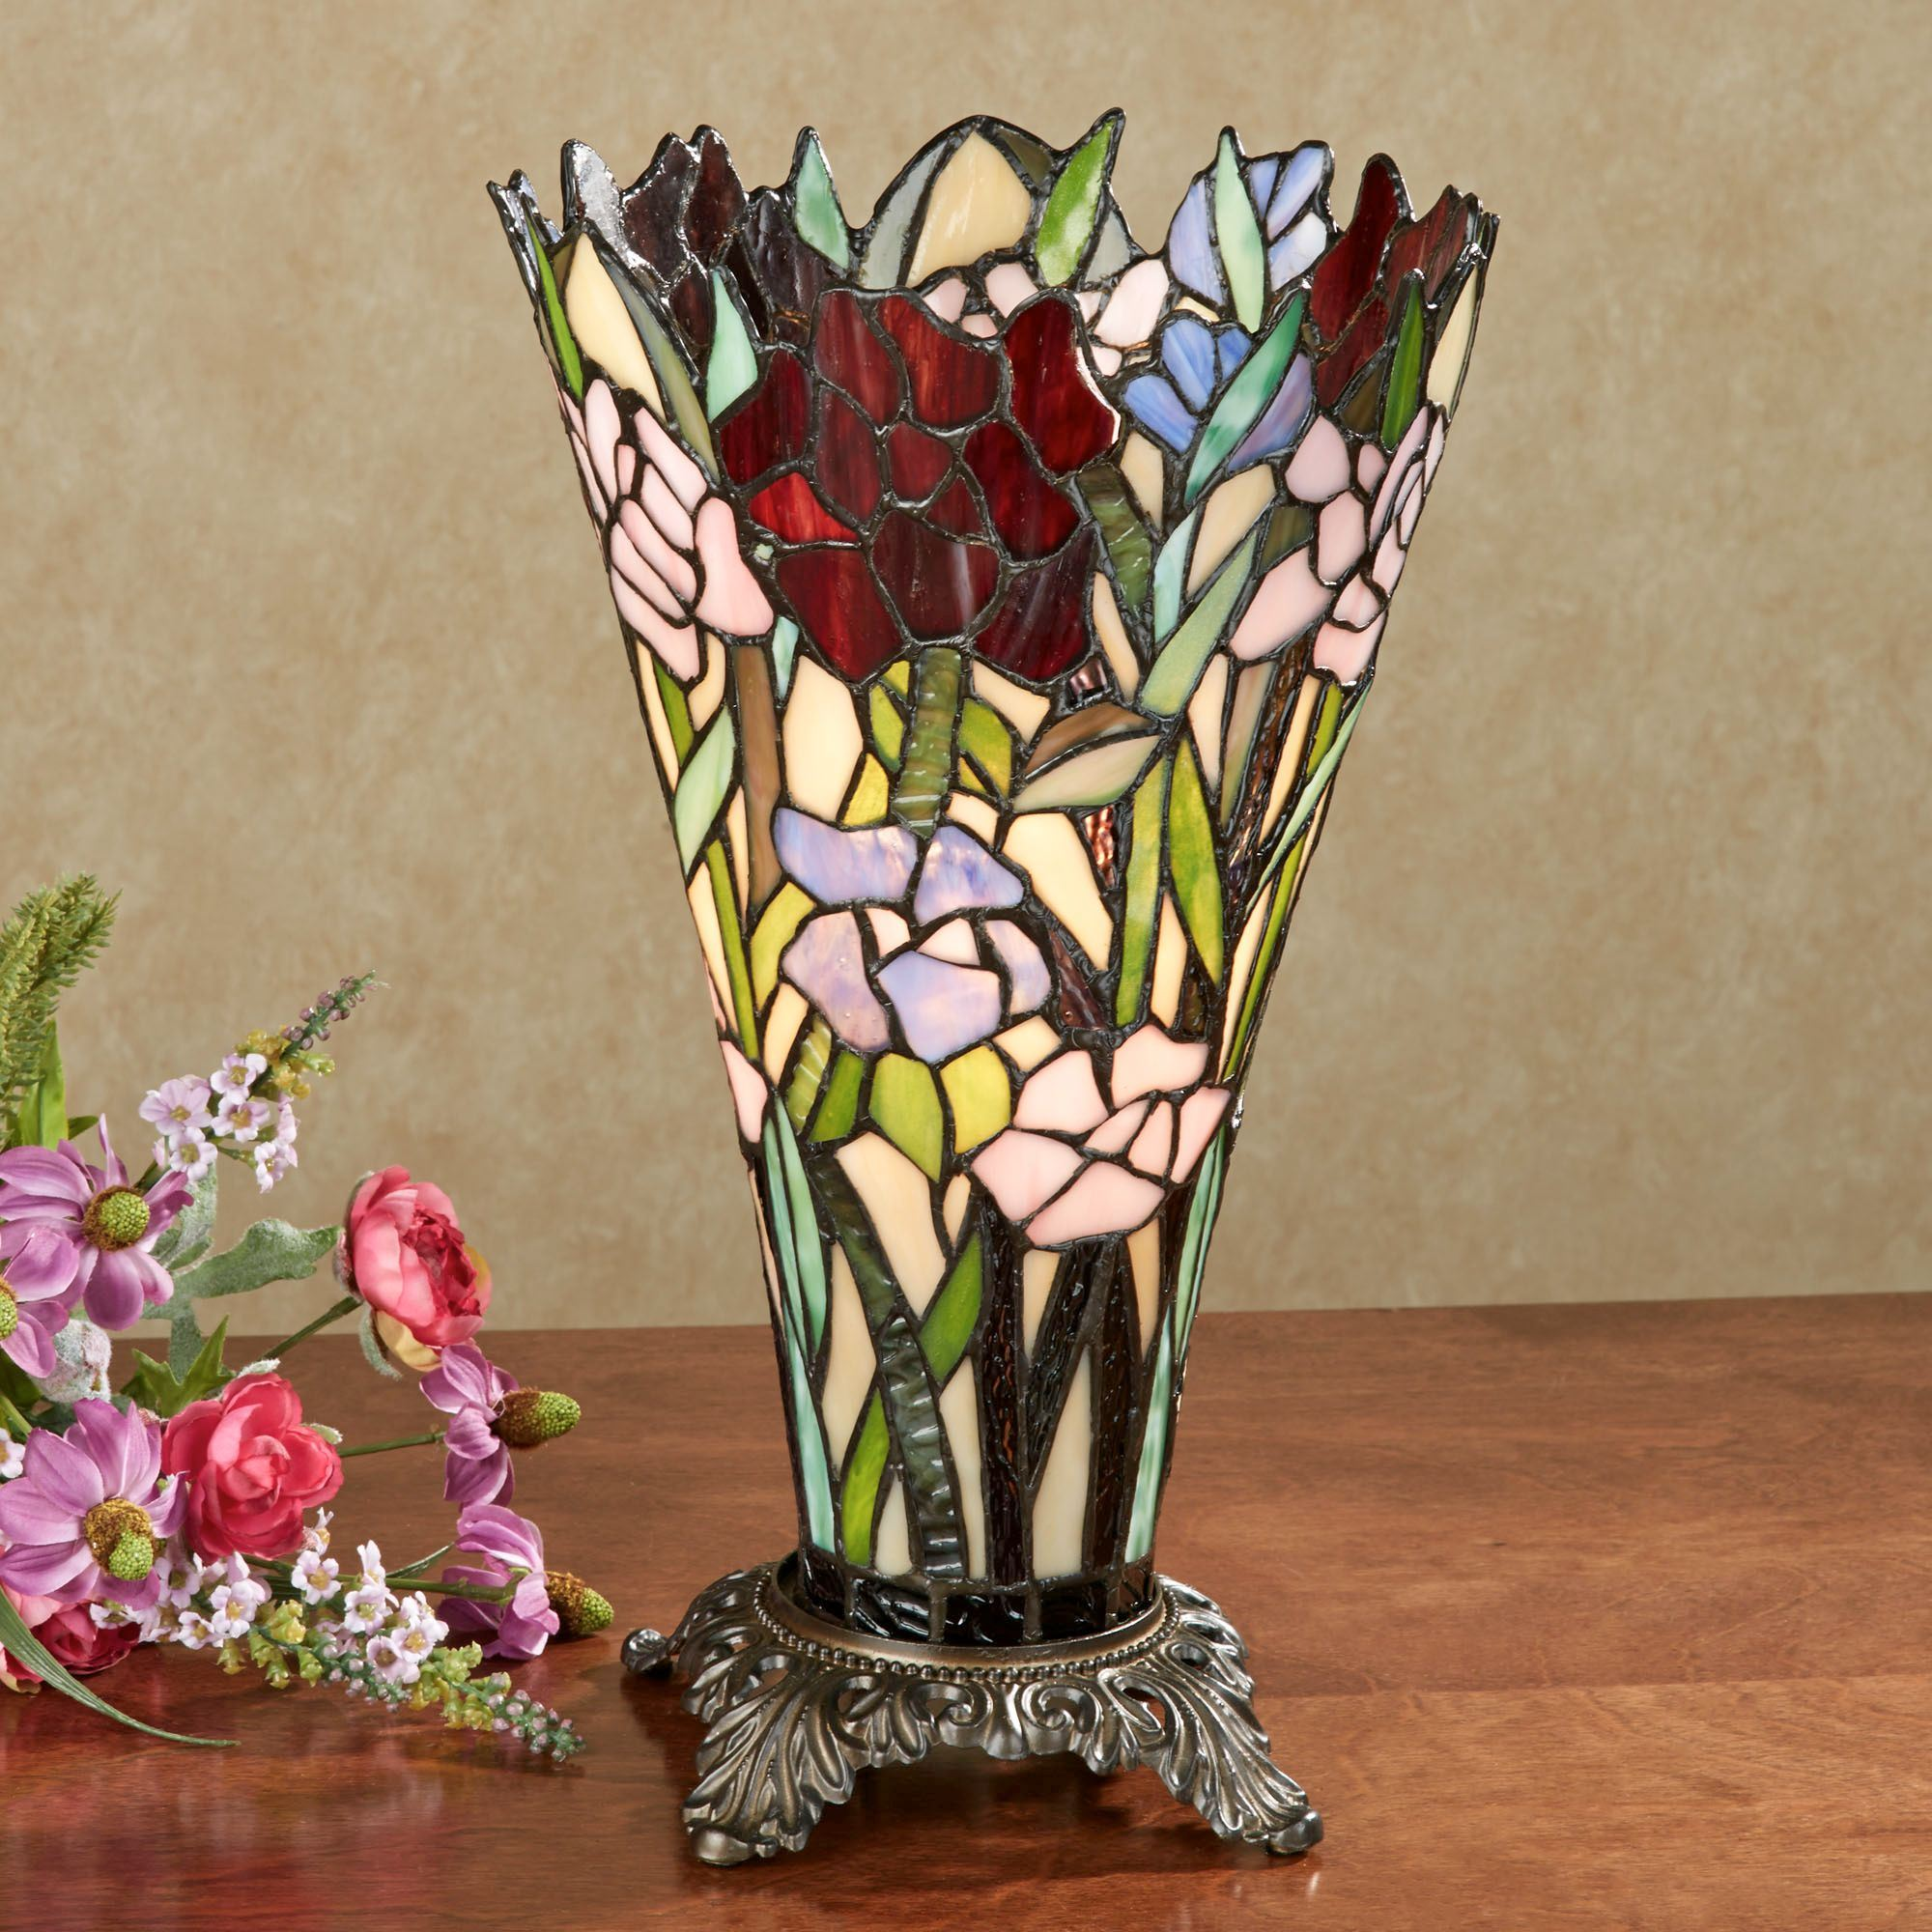 zuri vase shaped stained glass uplight lamp accent table lamps touch zoom pedestals fabric coffee acrylic cube side unfinished wood furniture best end tables laptop decor marble